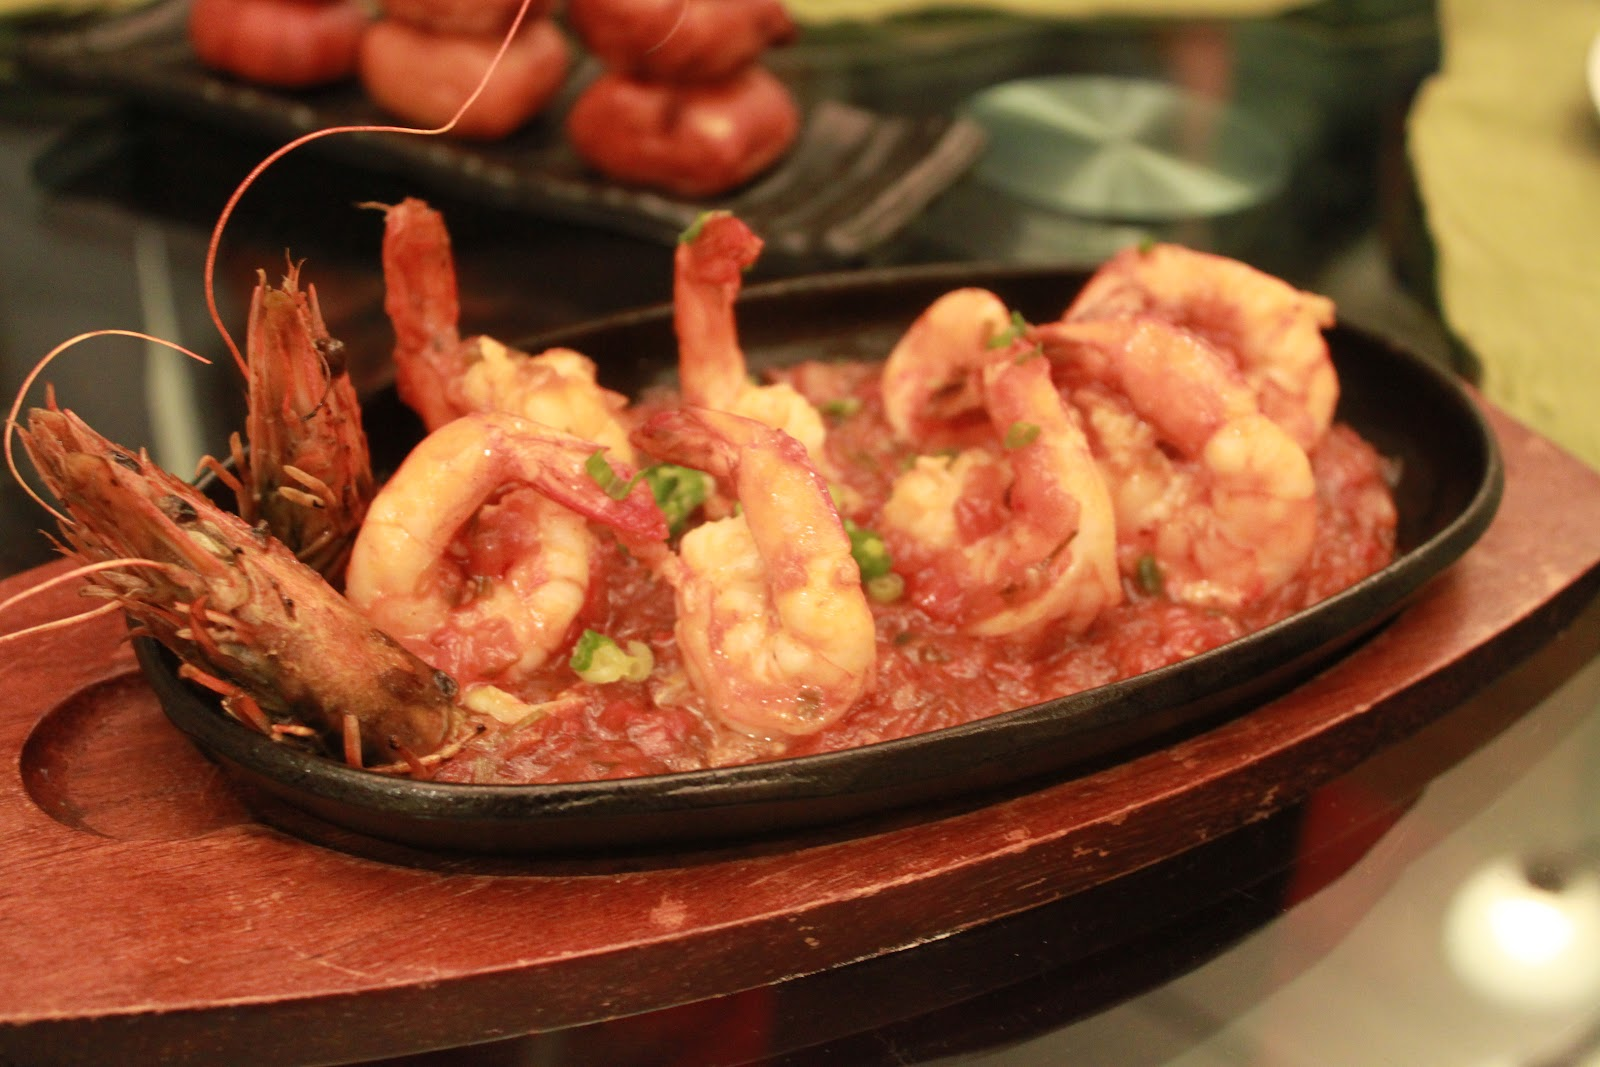 Sauteed prawns in Meenu's secret sauce